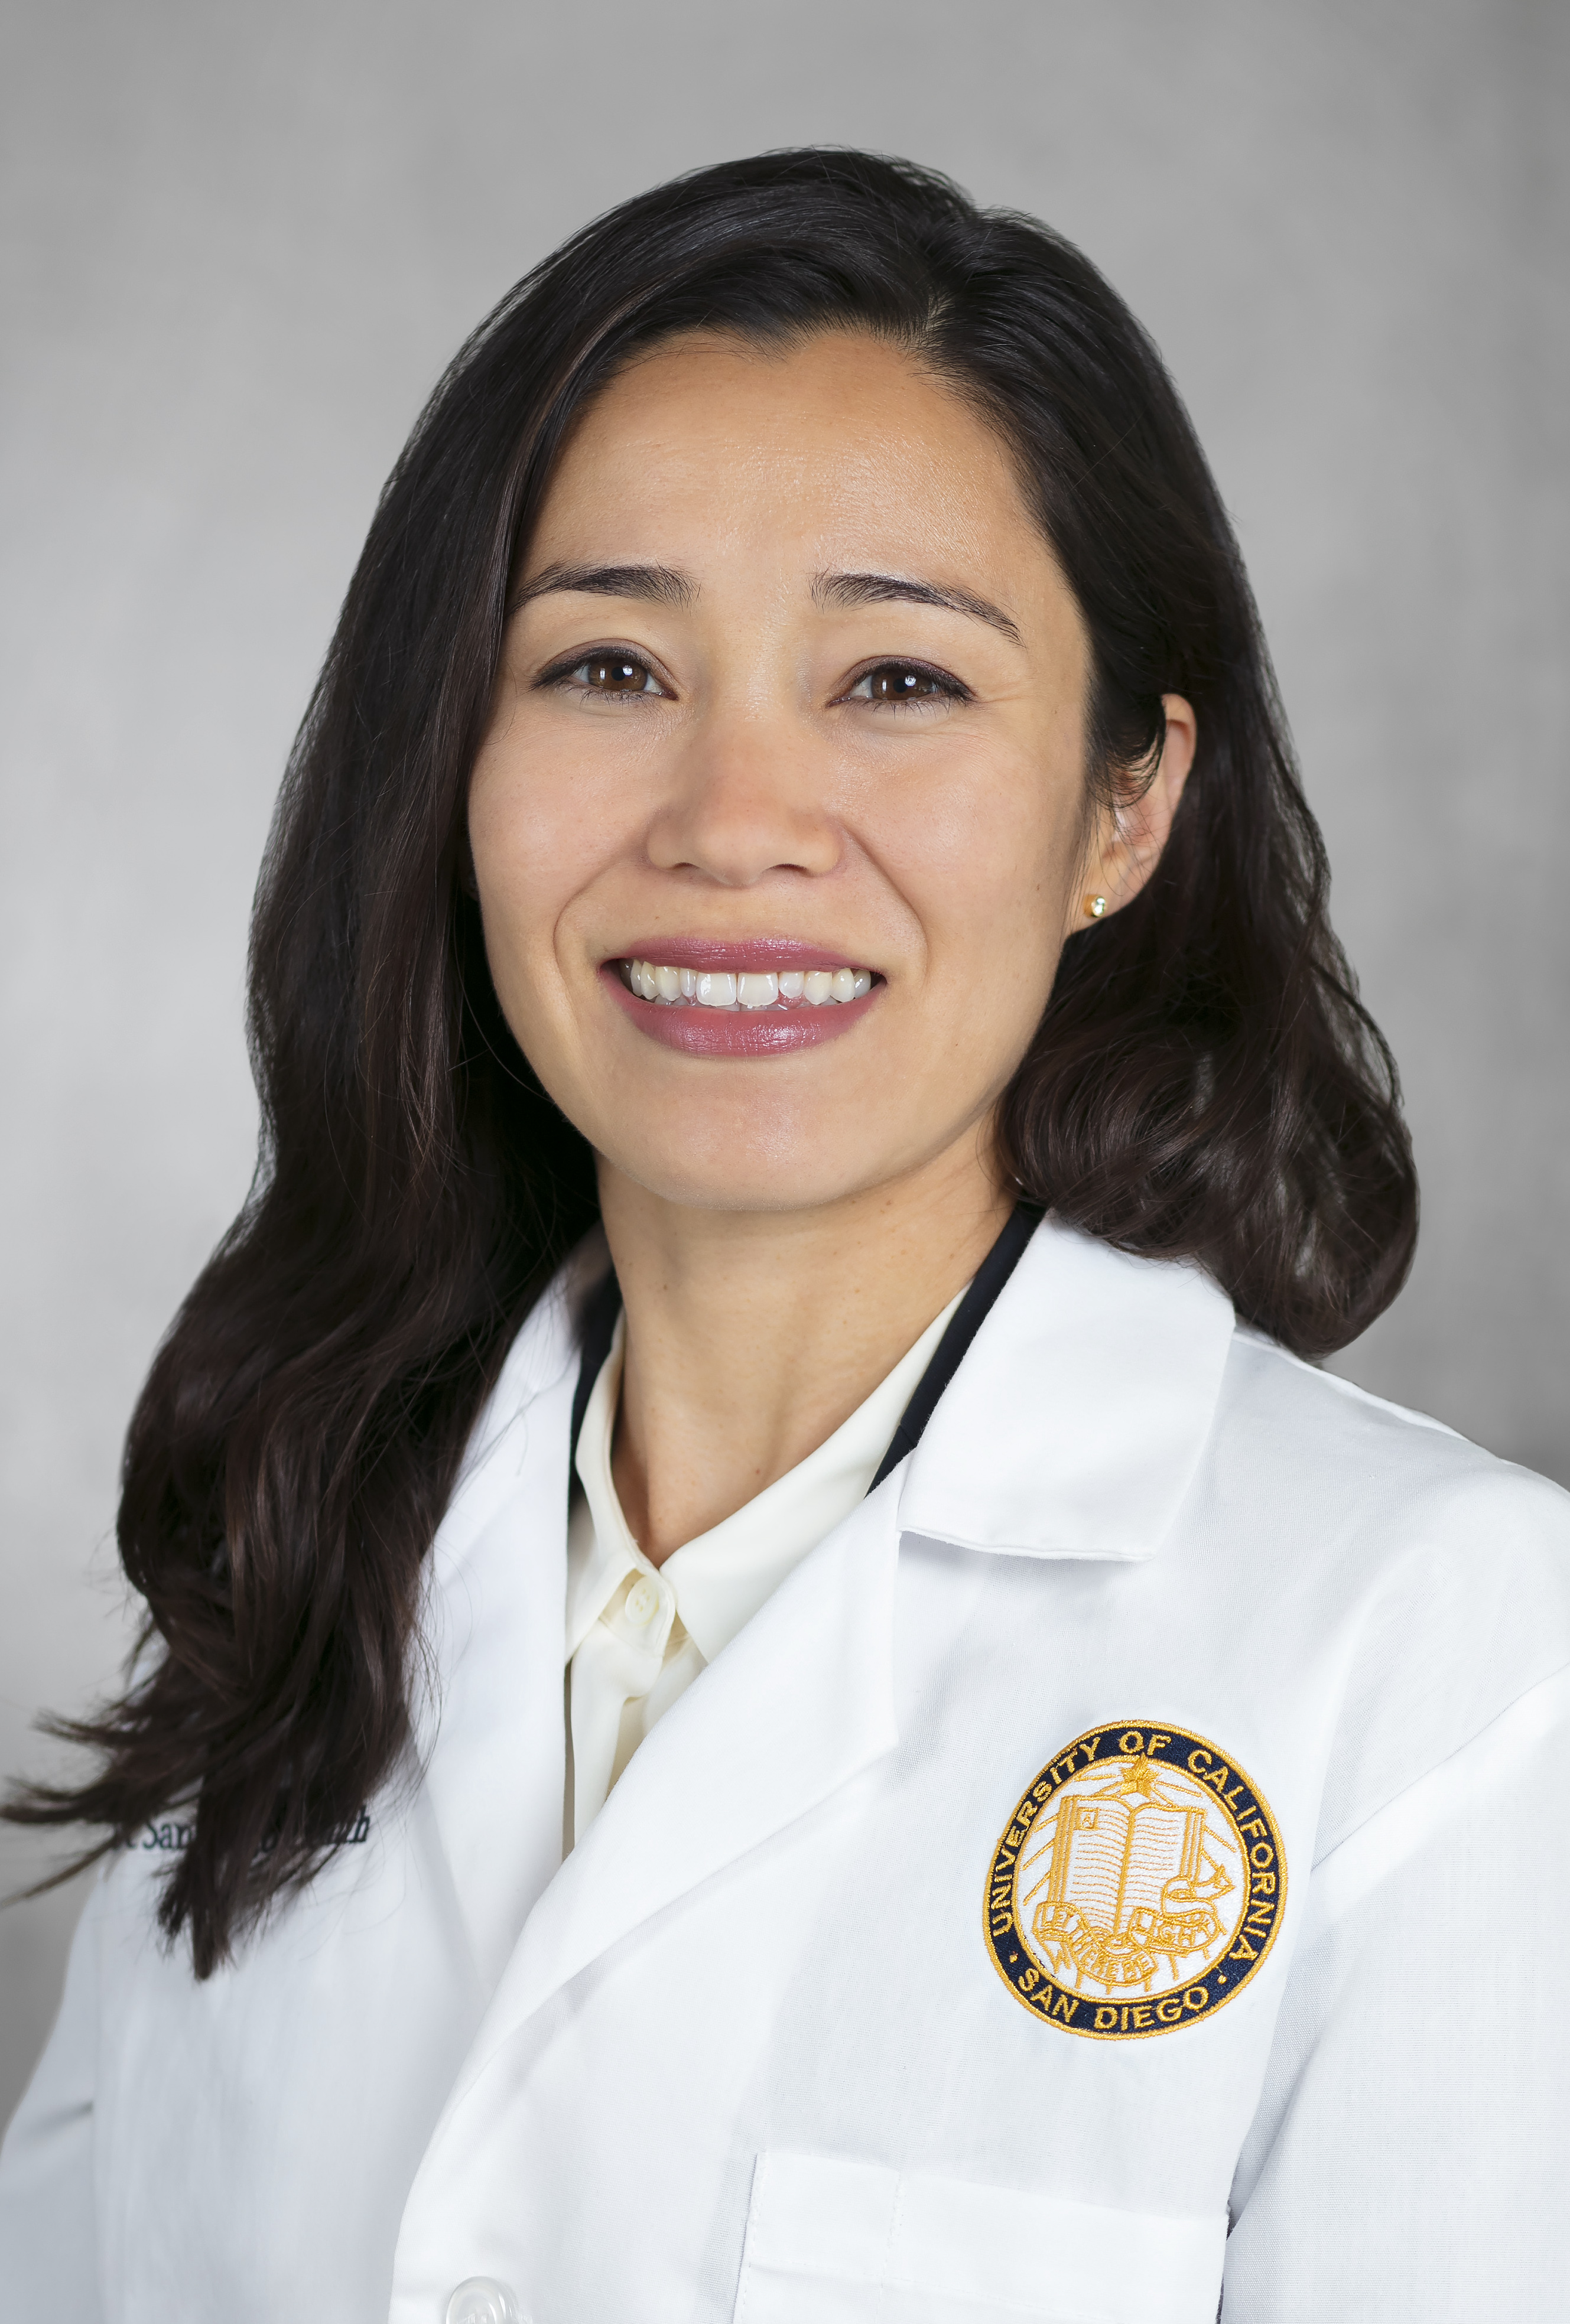 headshot of a woman with long dark hair wearing a white lab coat